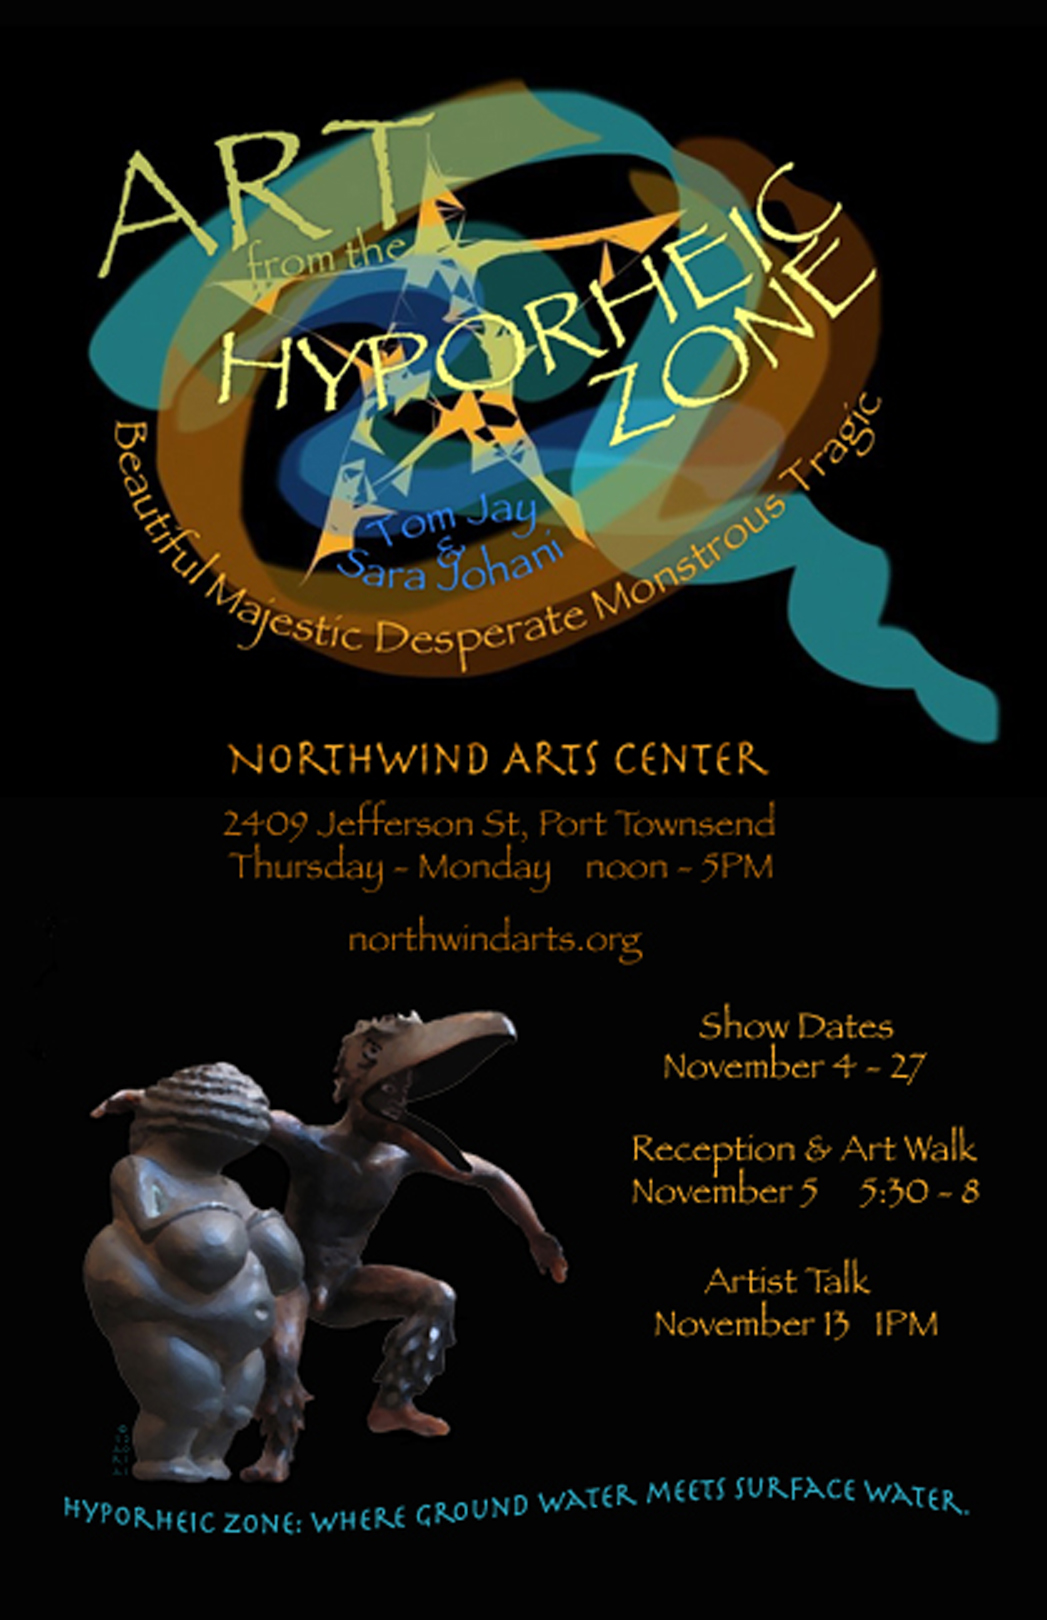 Poster for The Hyporheic Zone exhibit